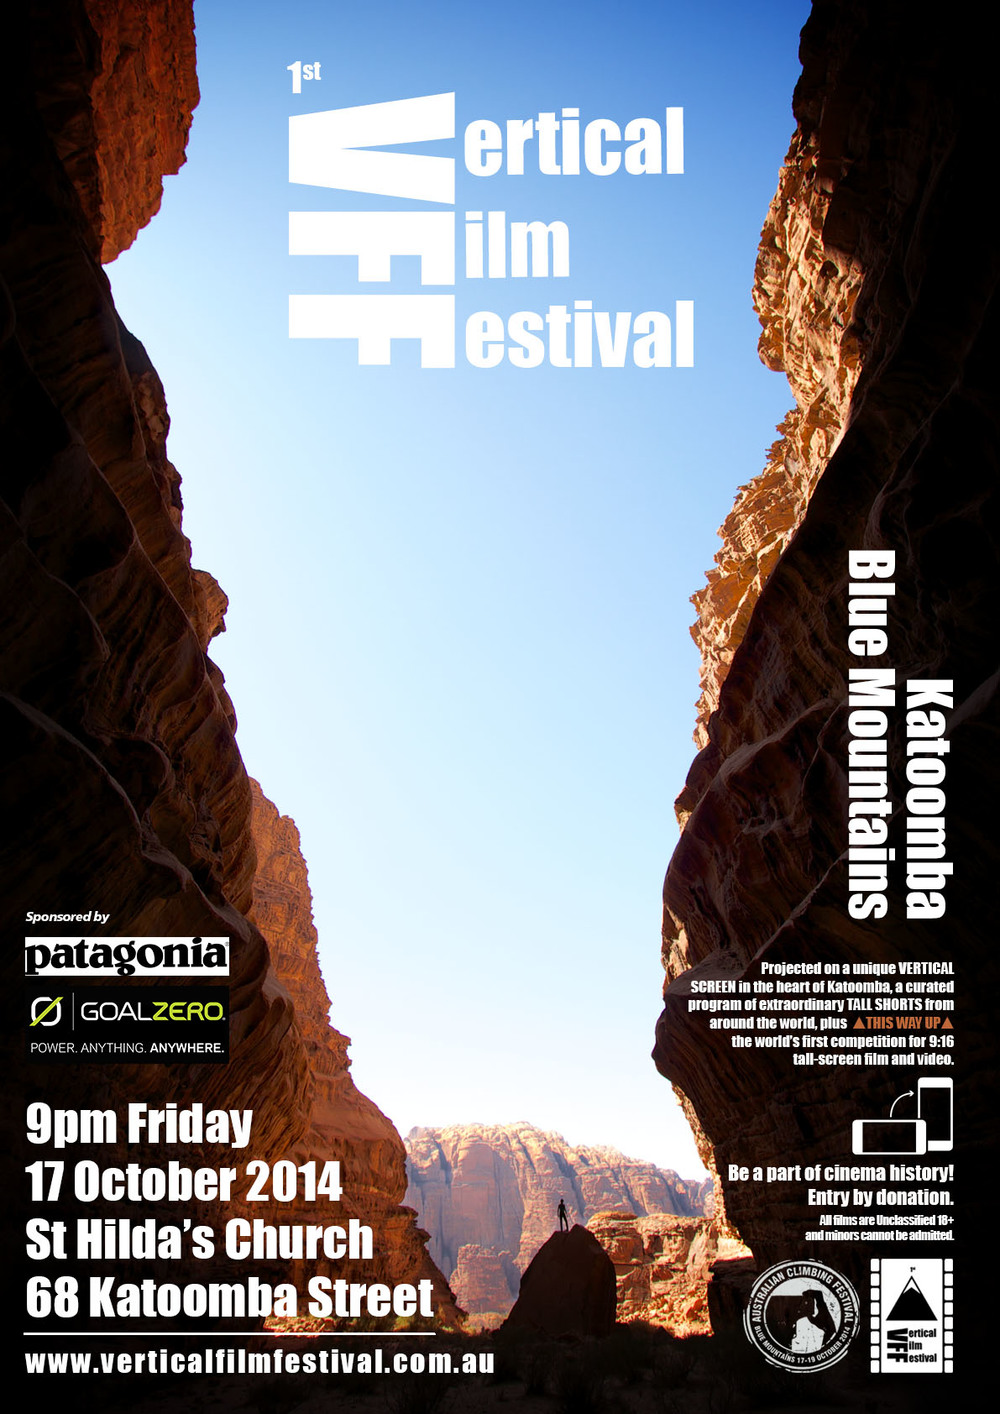 Poster for the 1st Edition of the Vertical Film Festival in 2014.